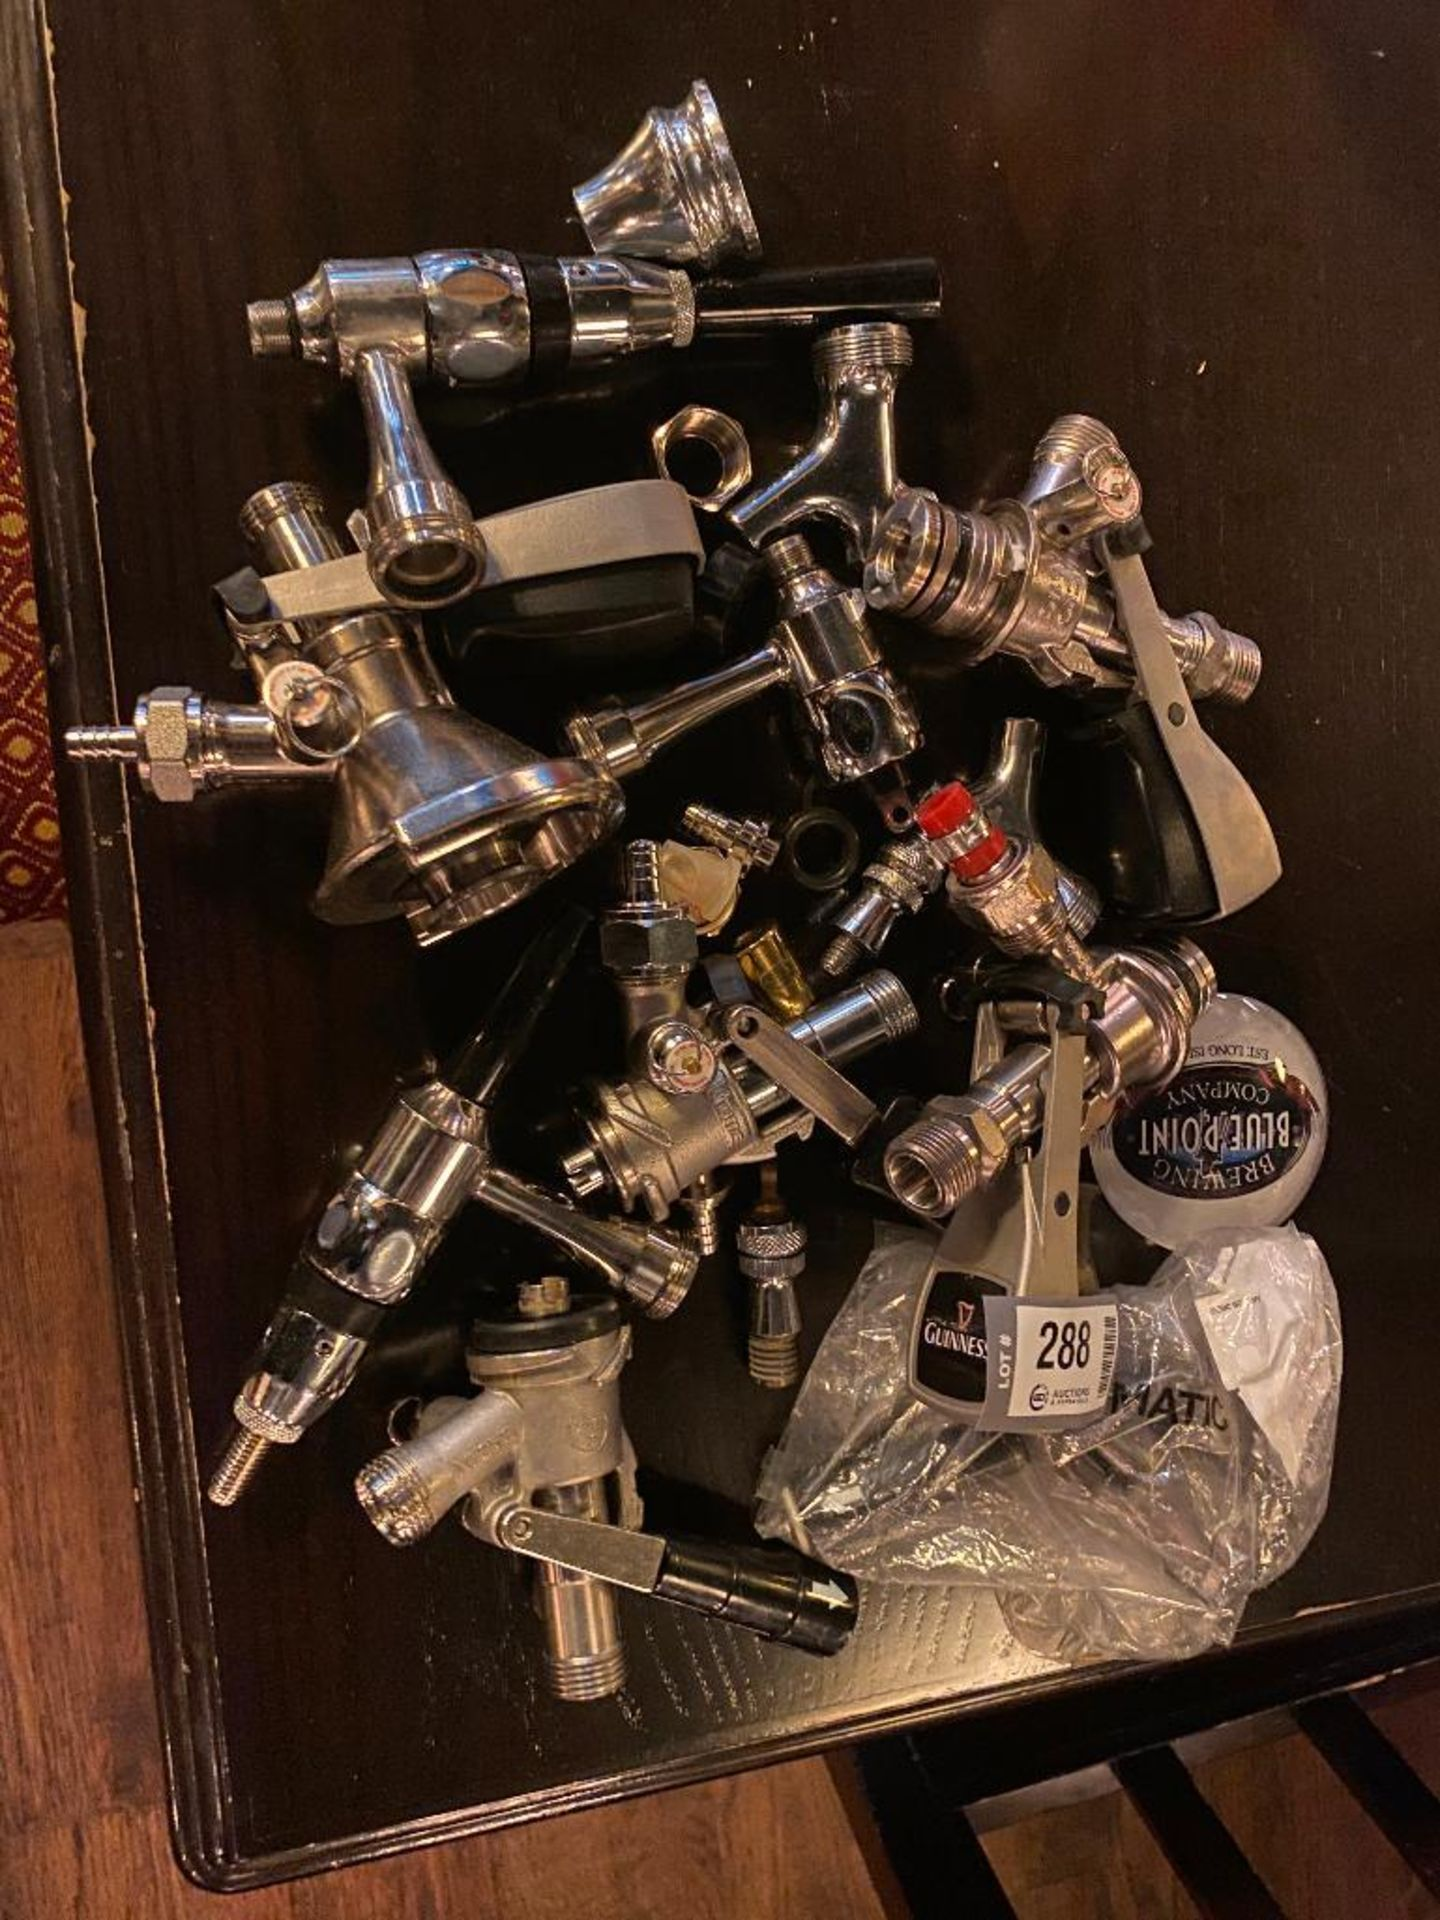 LOT OF ASSORTED DRAFT BEER FAUCET TAPS - Image 2 of 2